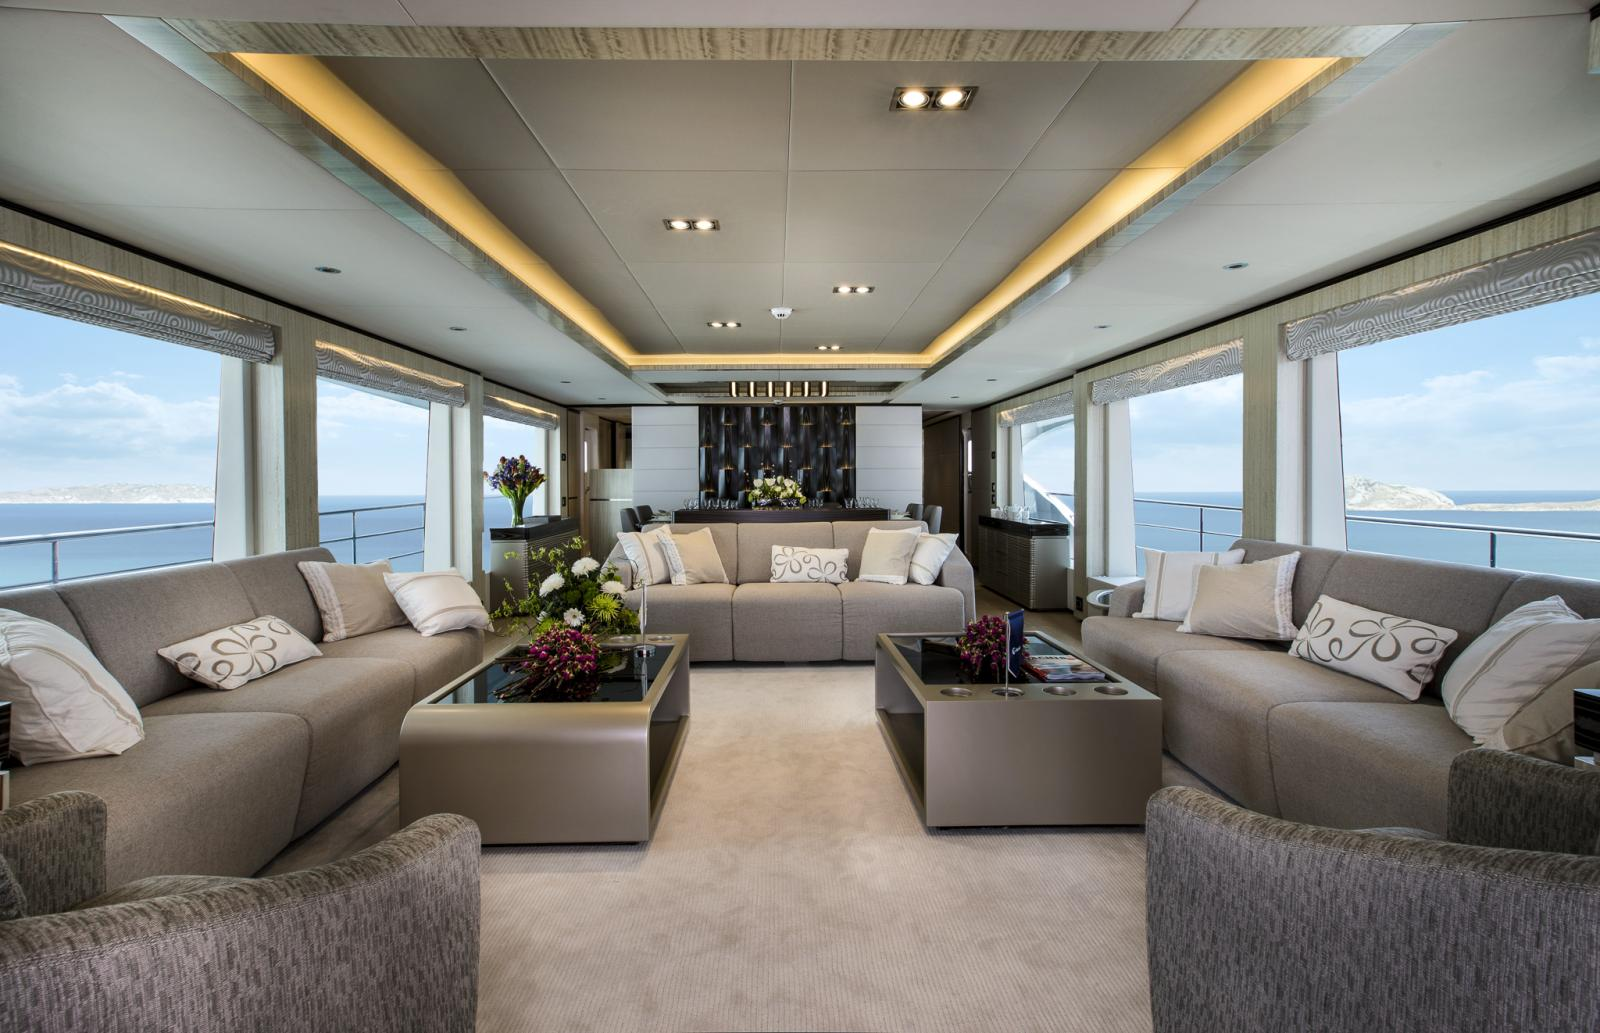 Gulf Craft Delivers the Super Majesty 100 Mega Yacht Nahar